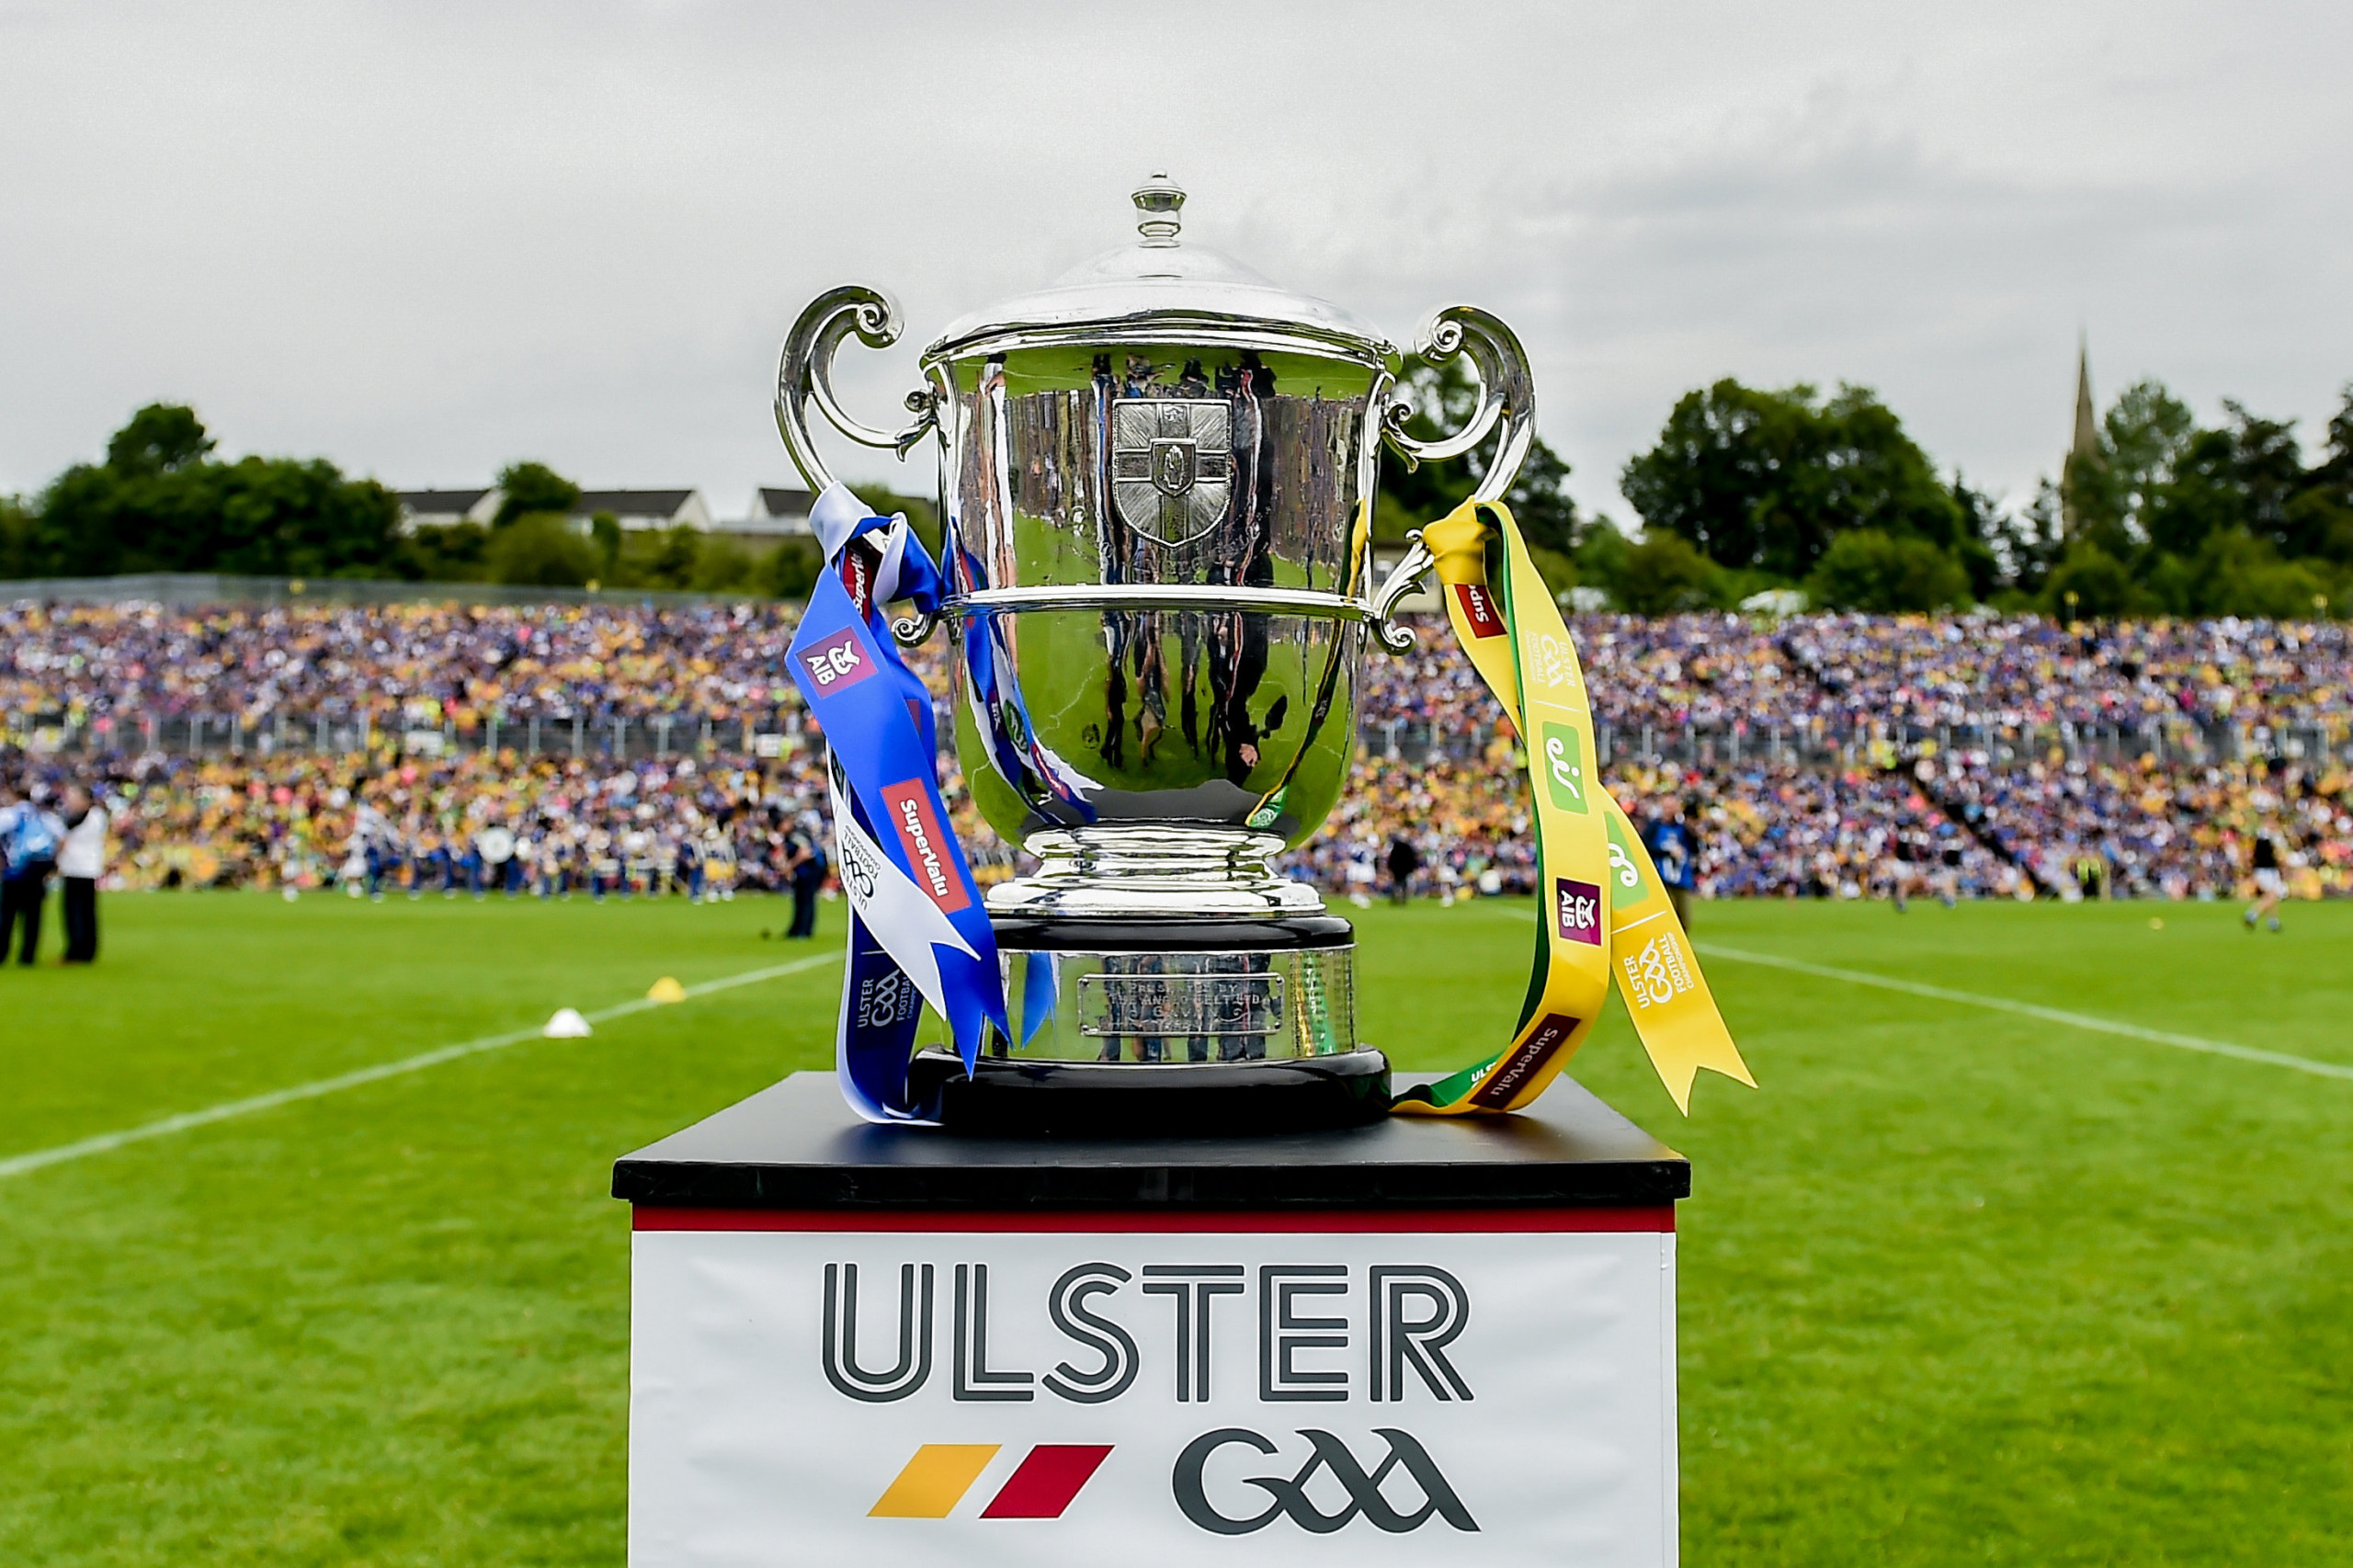 Update on Ulster GAA 2020 Fixtures and Competitions